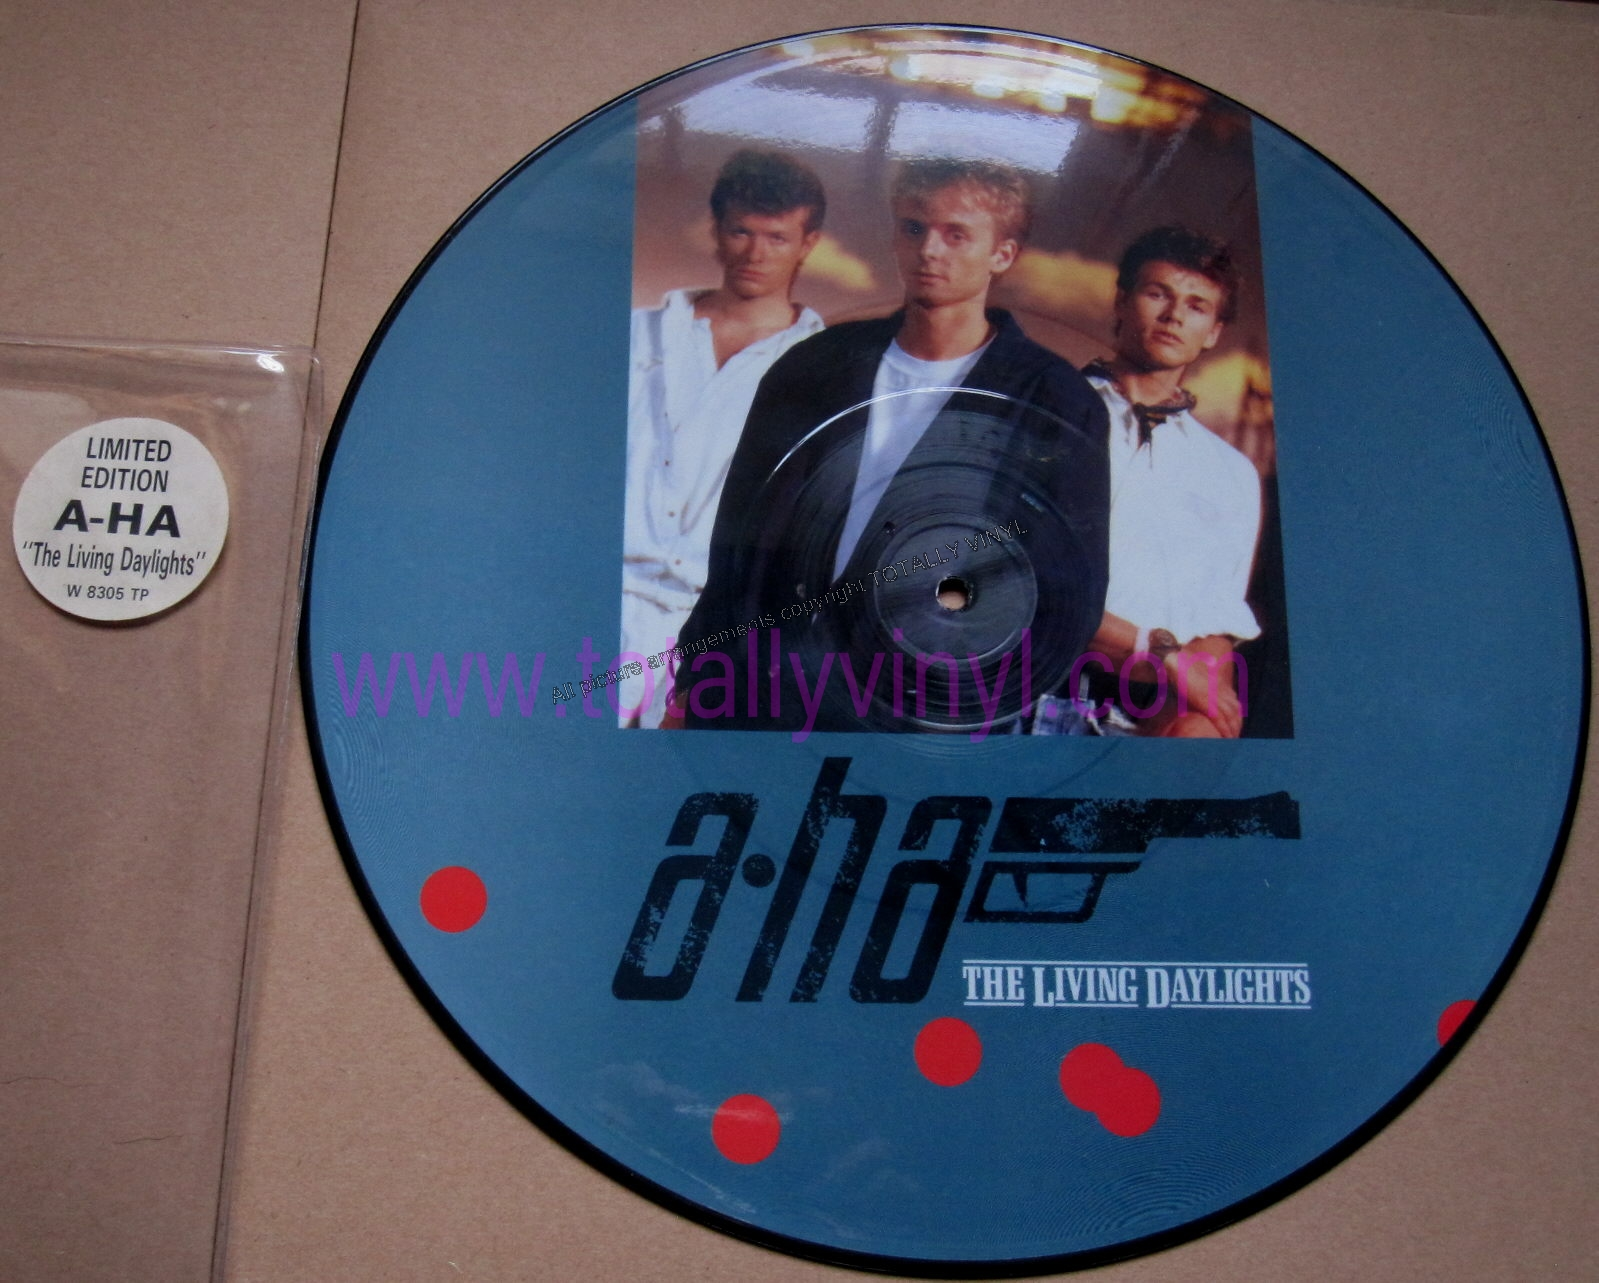 http://shop.totallyvinyl.com/img/uploads/images/aha/A_HA_THE_LIVING_DAYLIGHTS_PICTURE_DISC_12.jpg